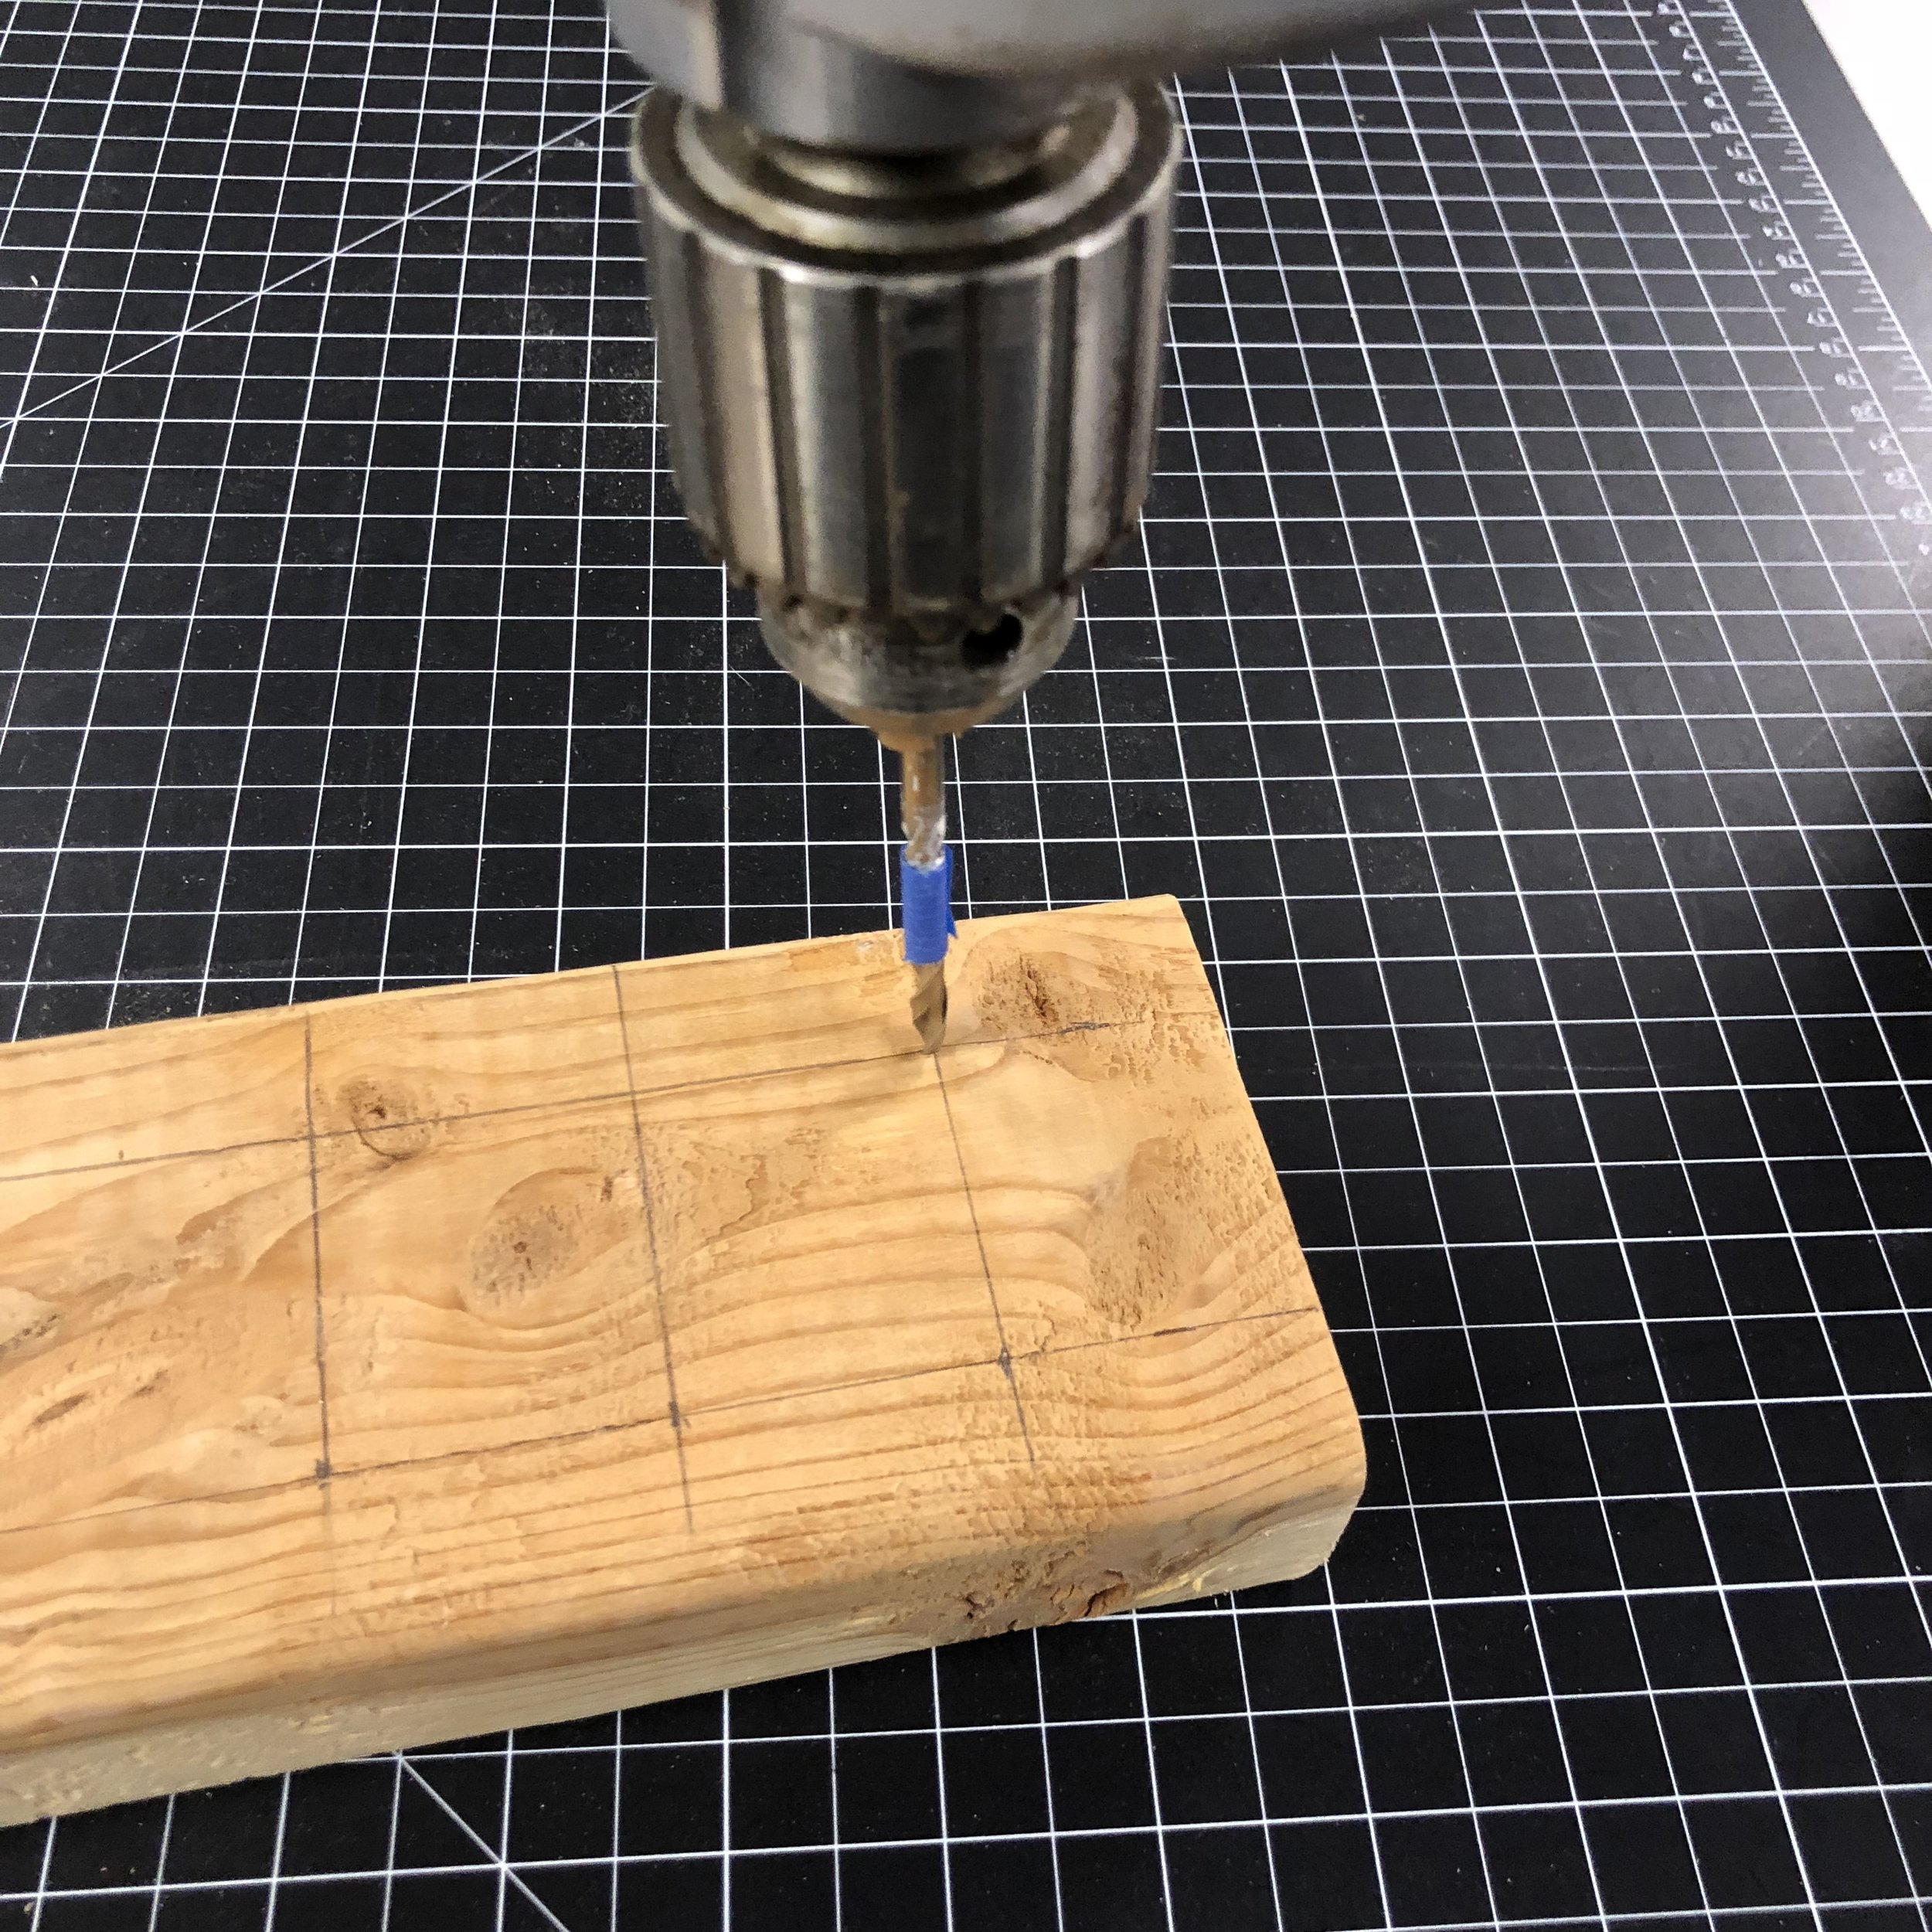 Tape on bit to drill the same depth